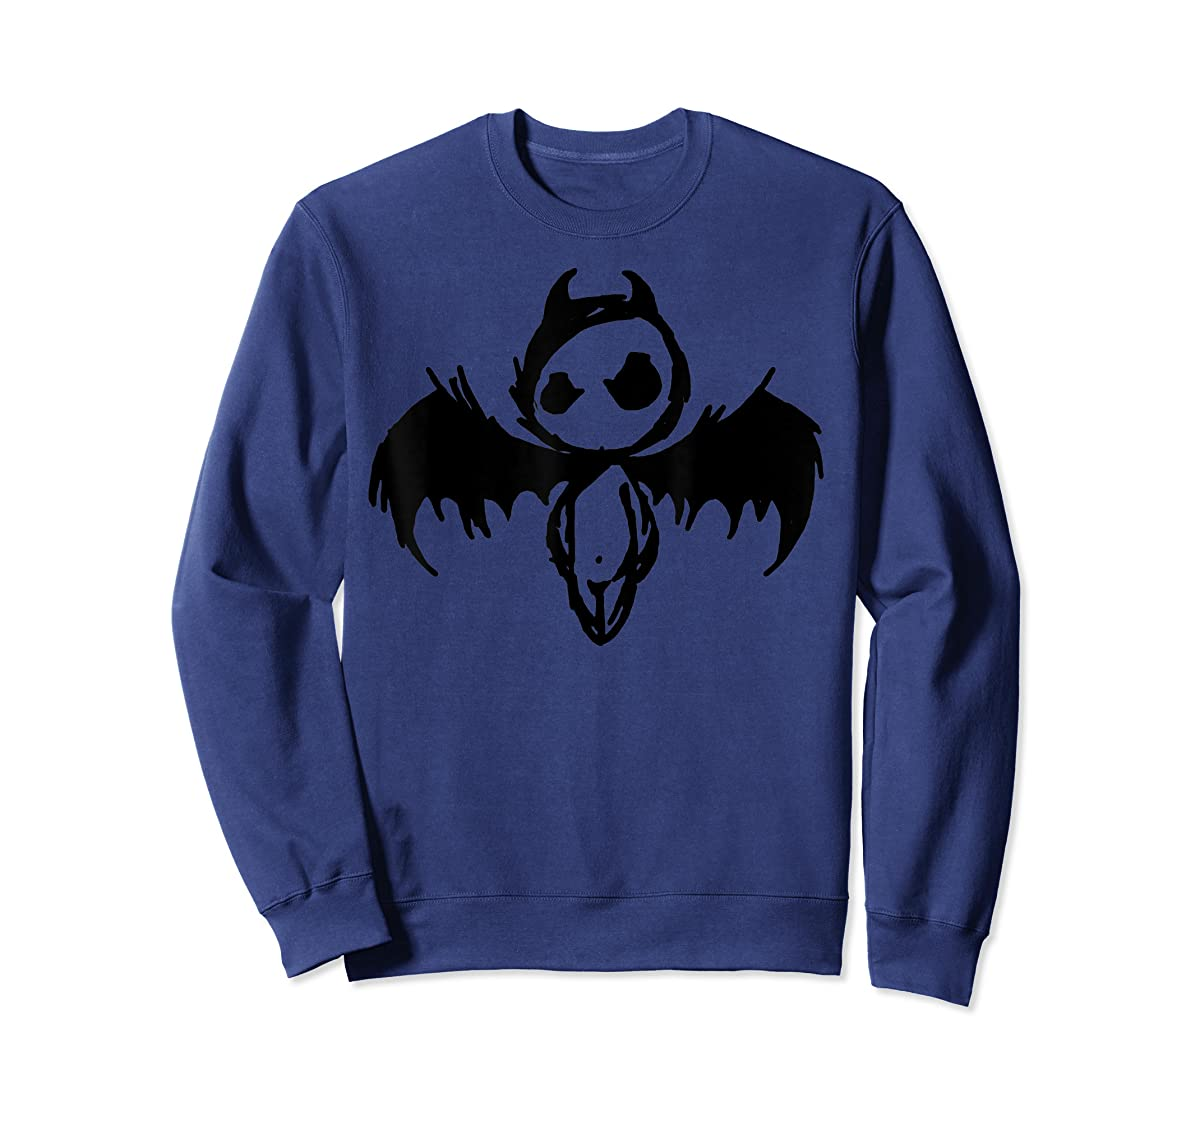 Cute Demon Vintage Couple Matching Halloween Party Costume  T-Shirt-Sweatshirt-Navy